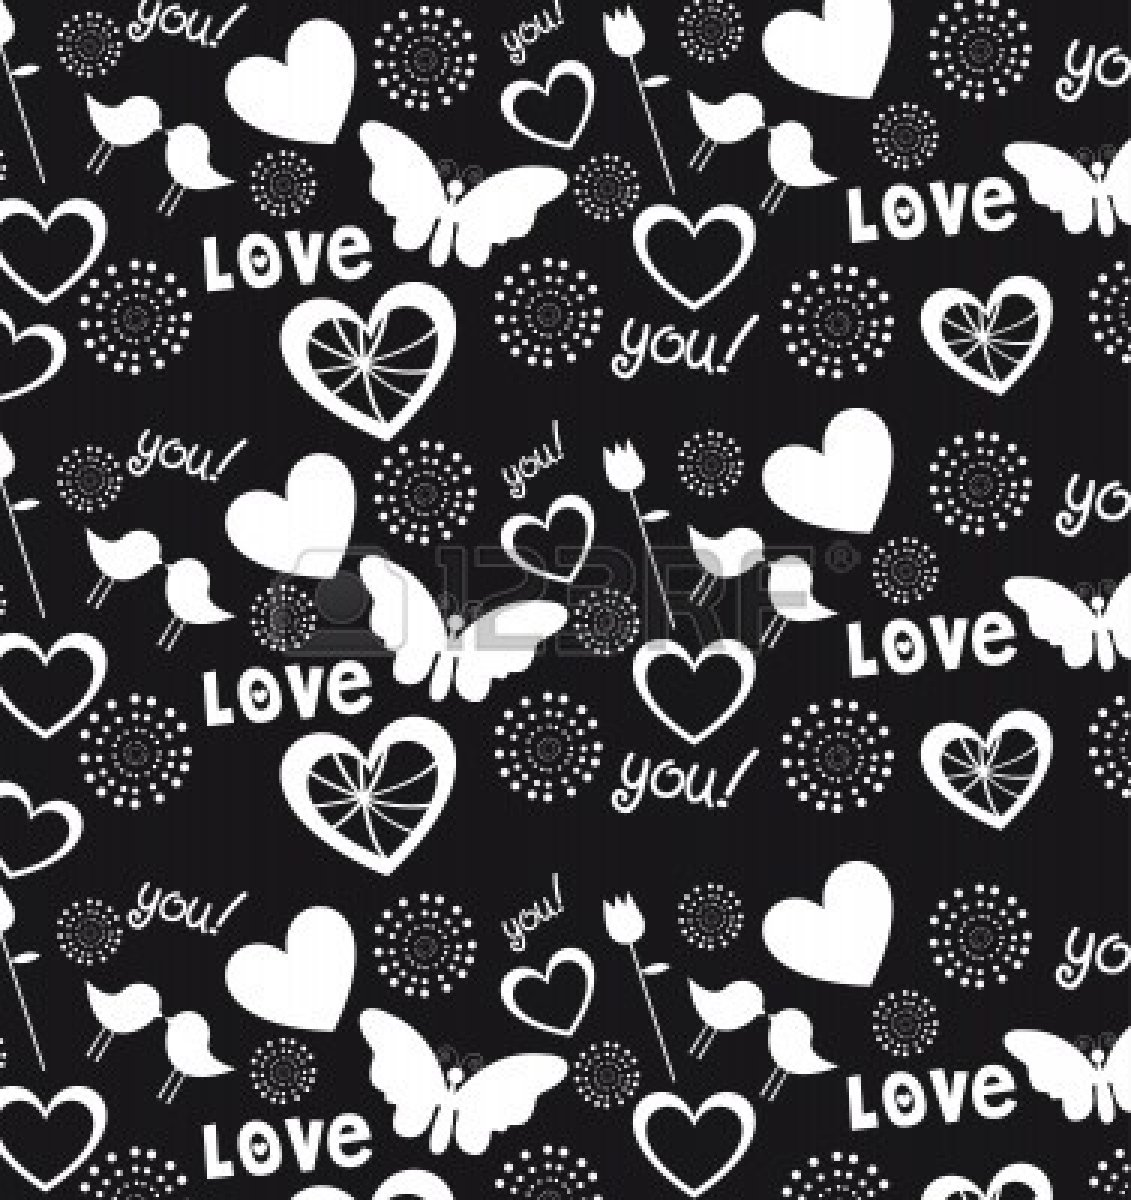 Free Download Hearts Love And Hearts Background Black And